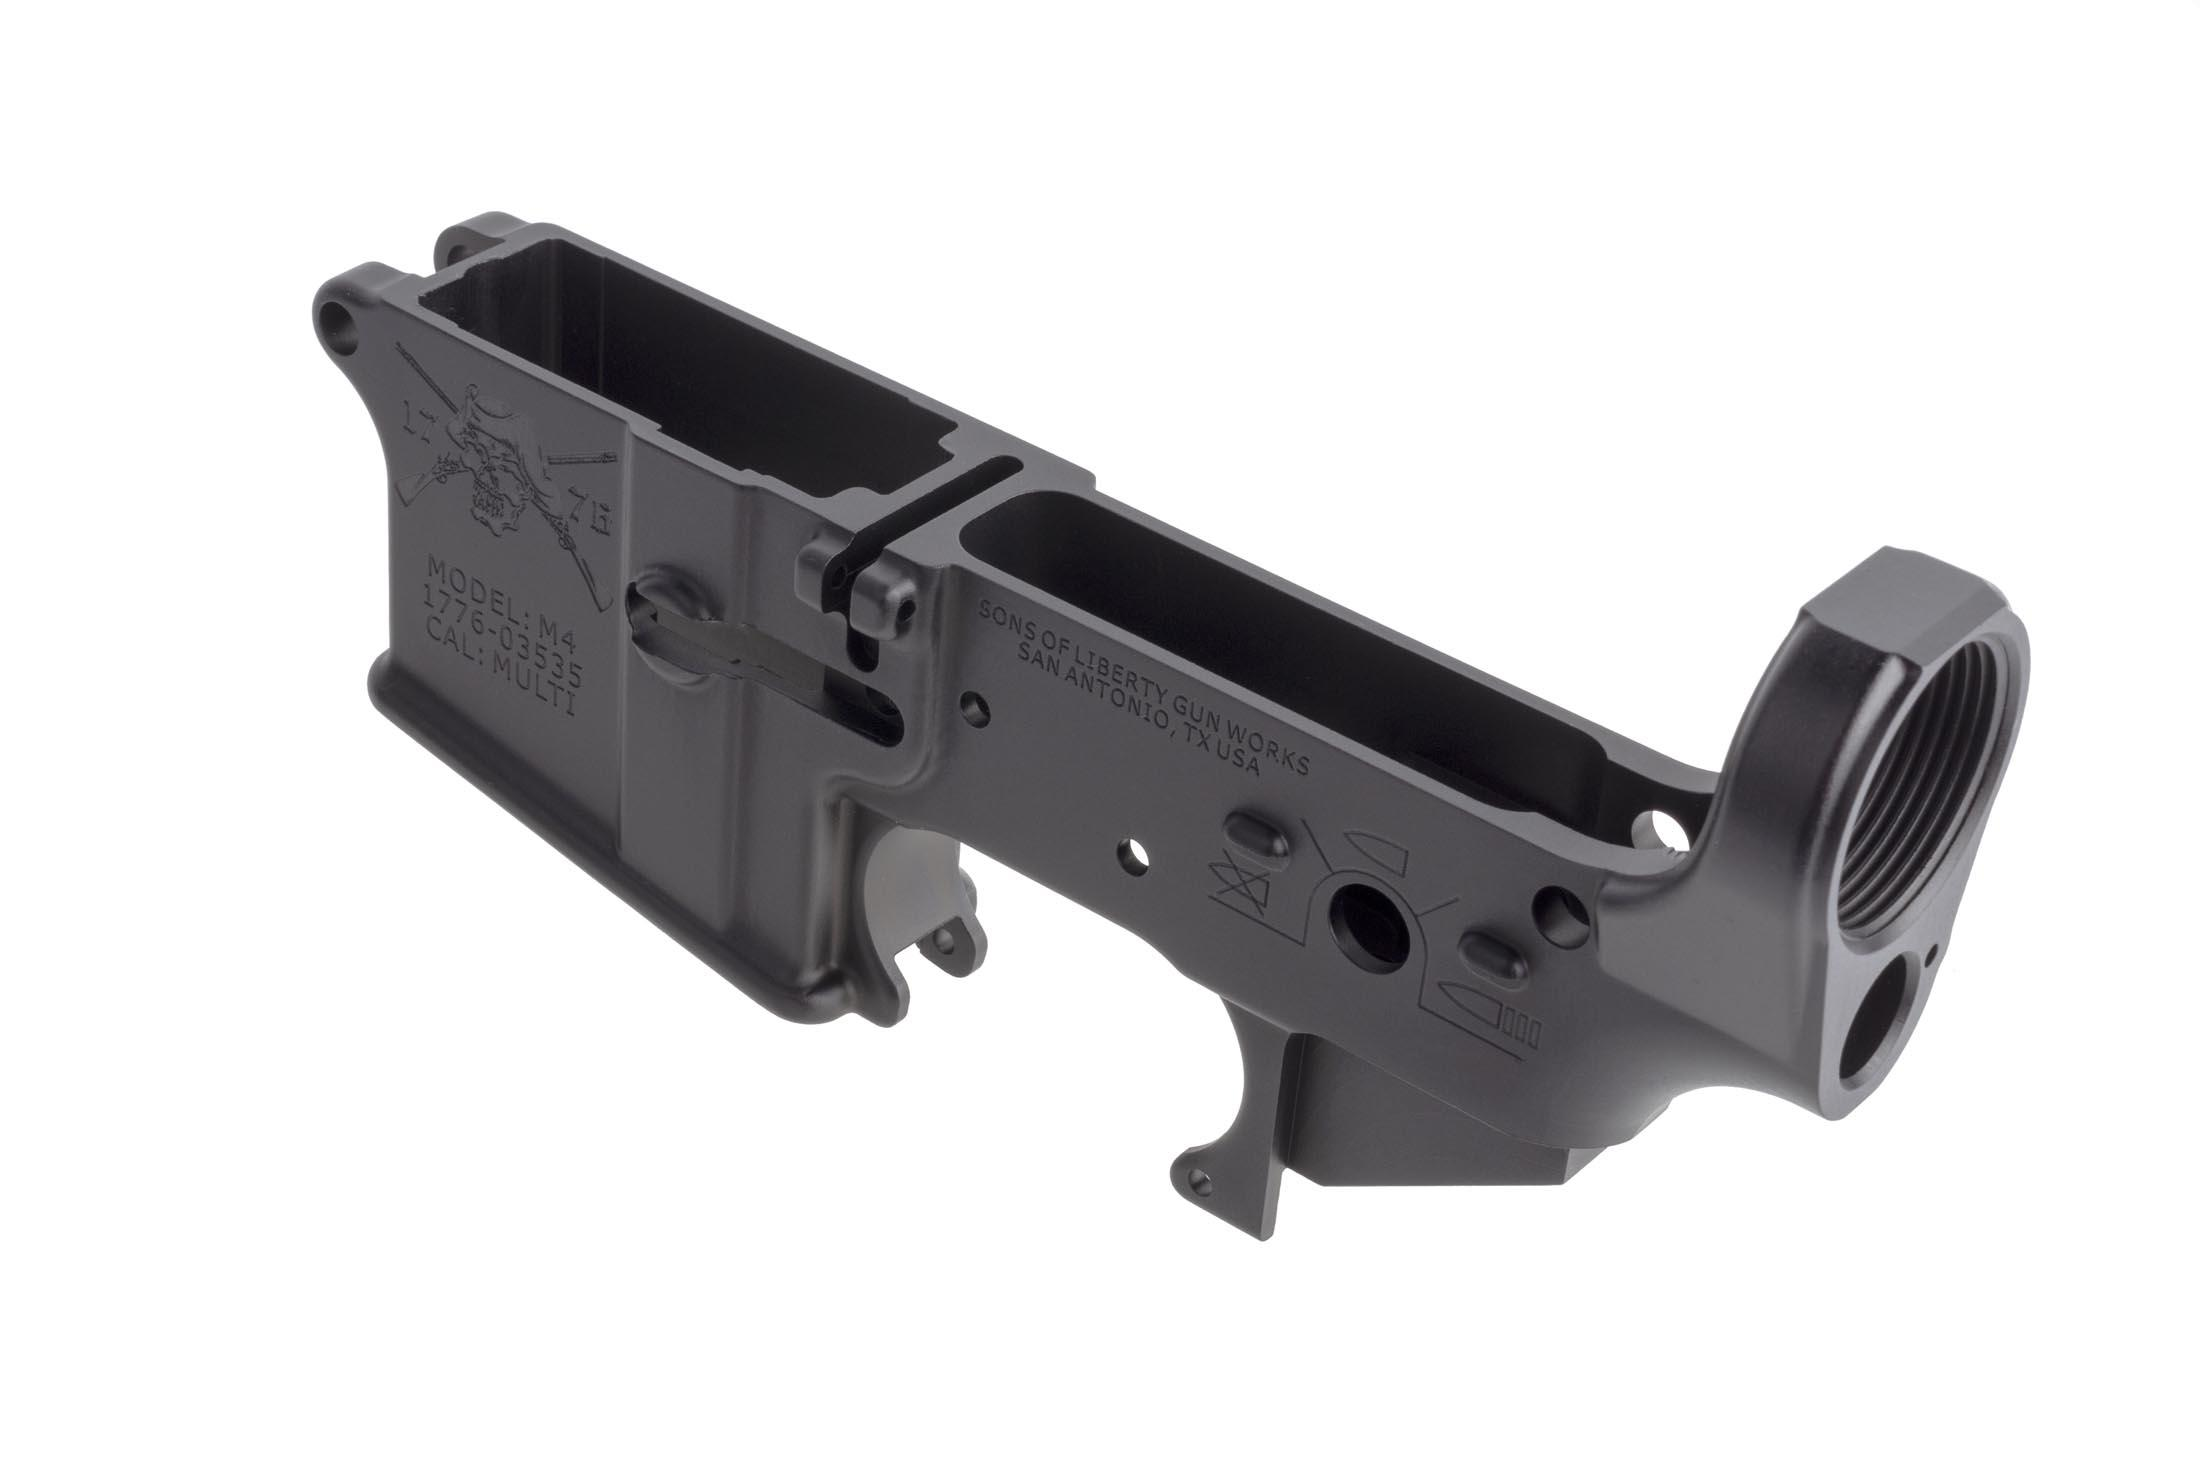 SOLGW Angry Patriot stripped AR-15 angry patriot lower is compatible with your favorite MIL-SPEC components